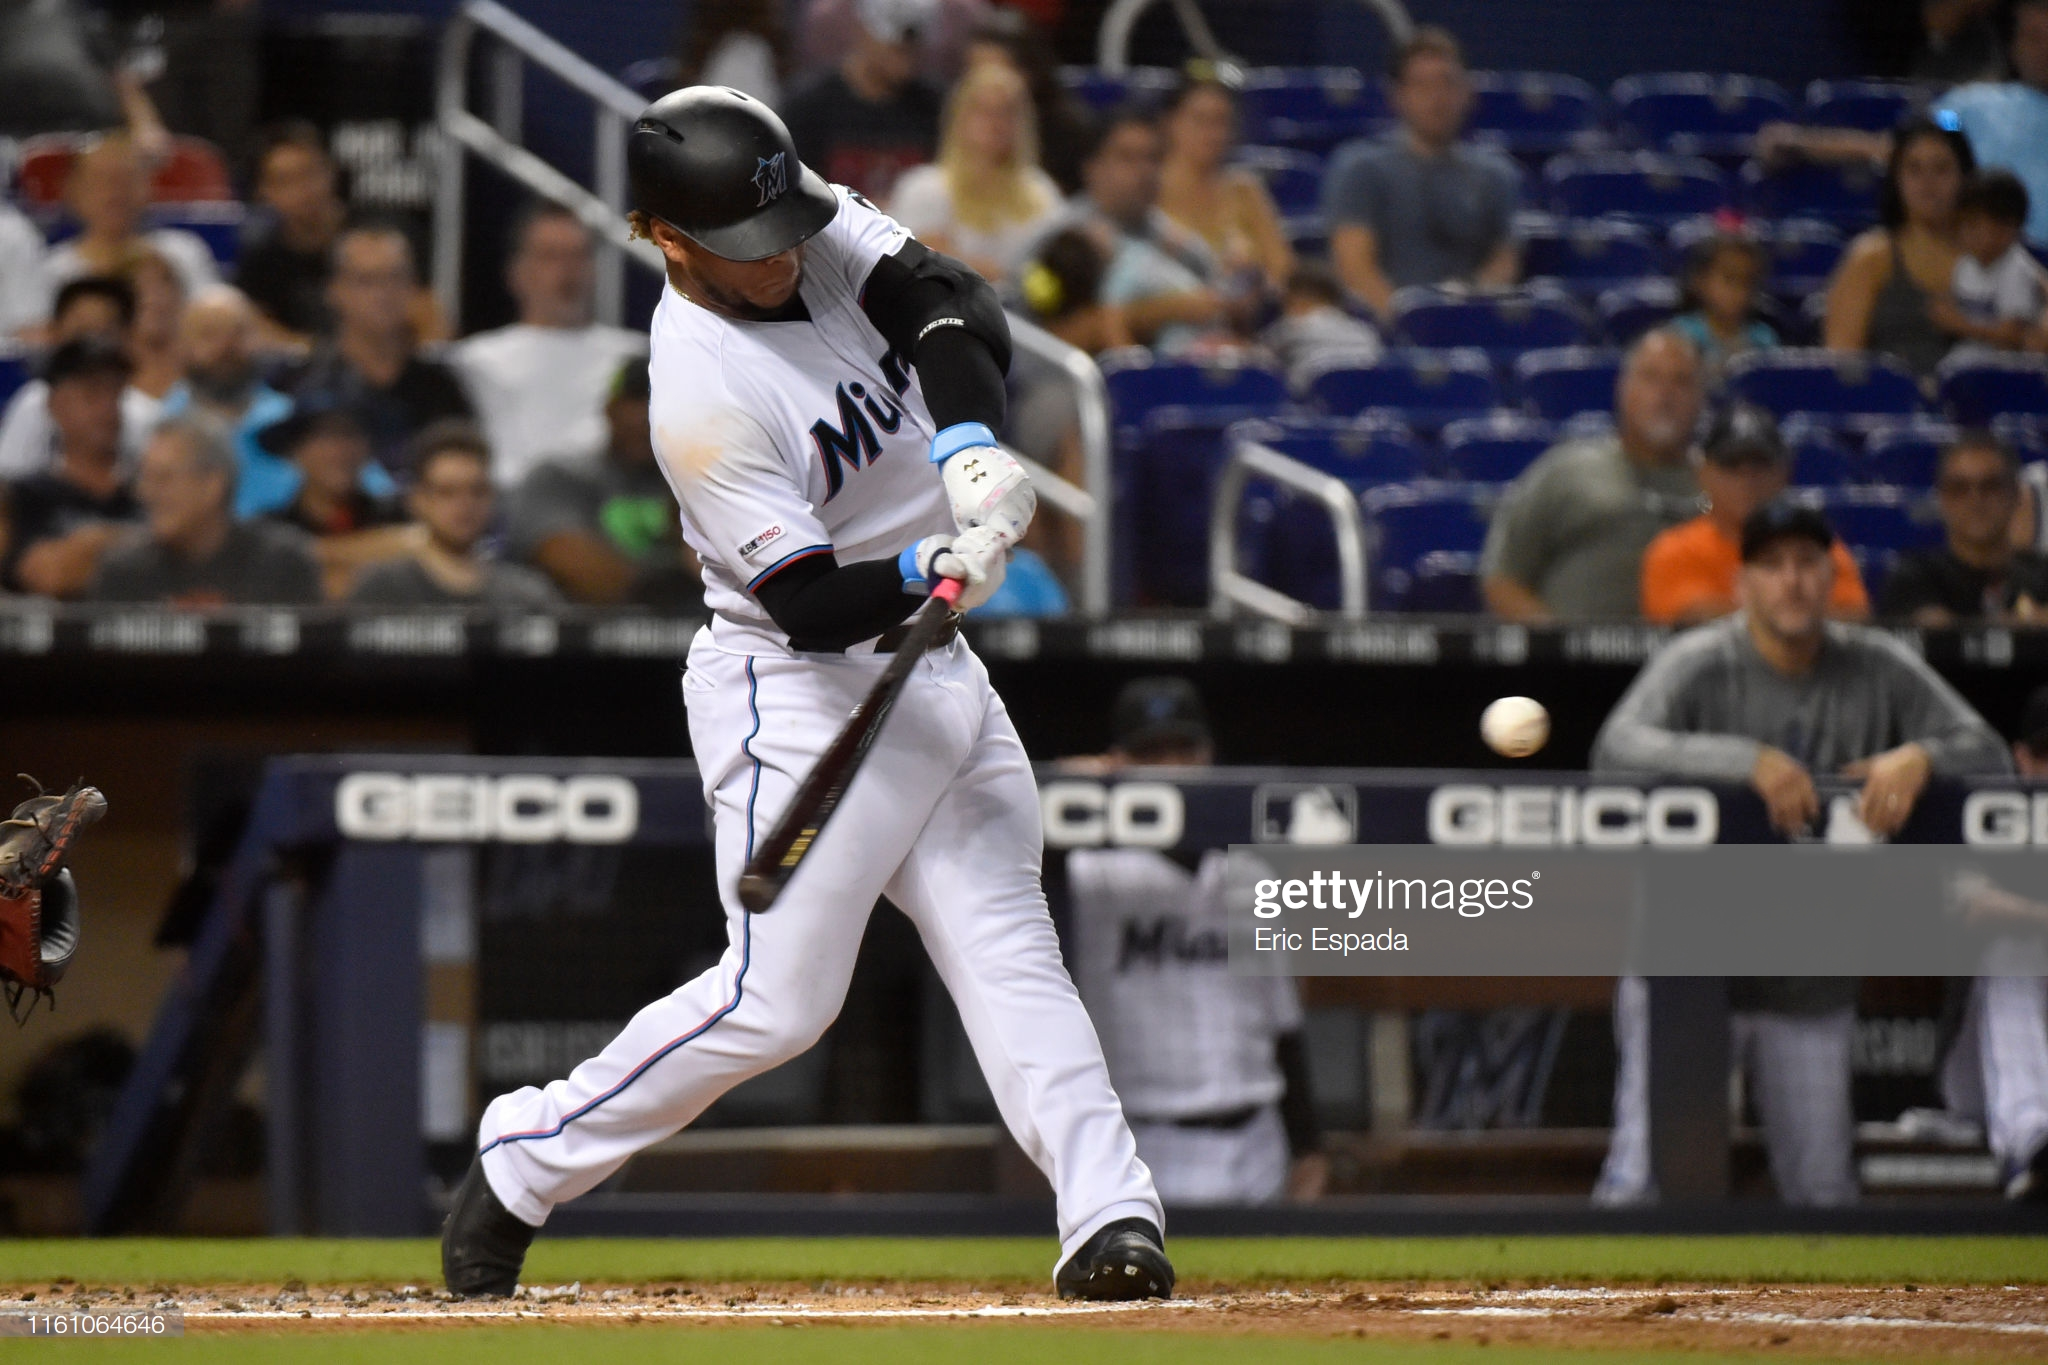 MIAMI, FL - AUGUST 11: Harold Ramirez #47 of the Miami Marlins hits an RBI double in the first inning against the Atlanta Braves at Marlins Park on August 11, 2019 in Miami, Florida. (Photo by Eric Espada/Getty Images)